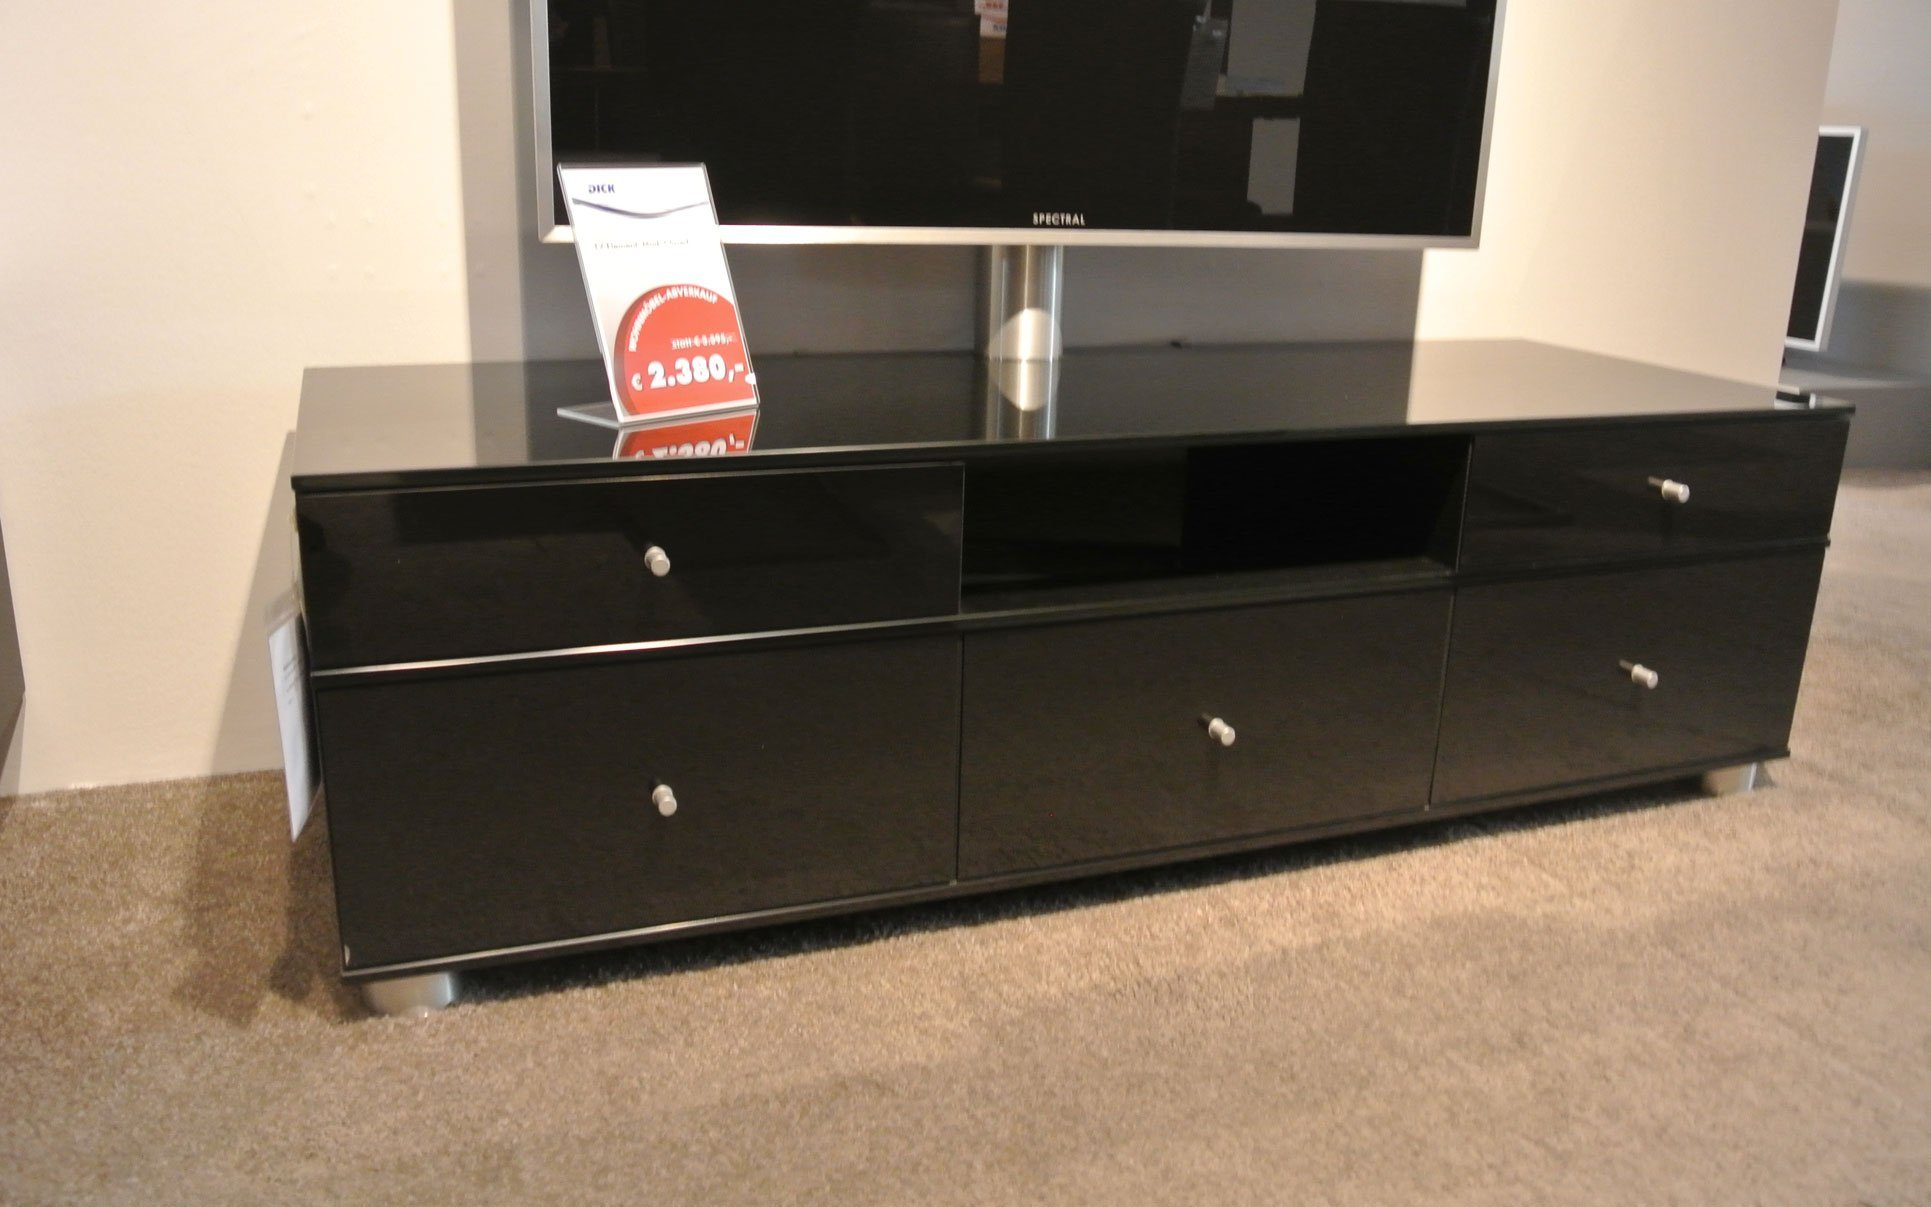 spectral tv element closed. Black Bedroom Furniture Sets. Home Design Ideas